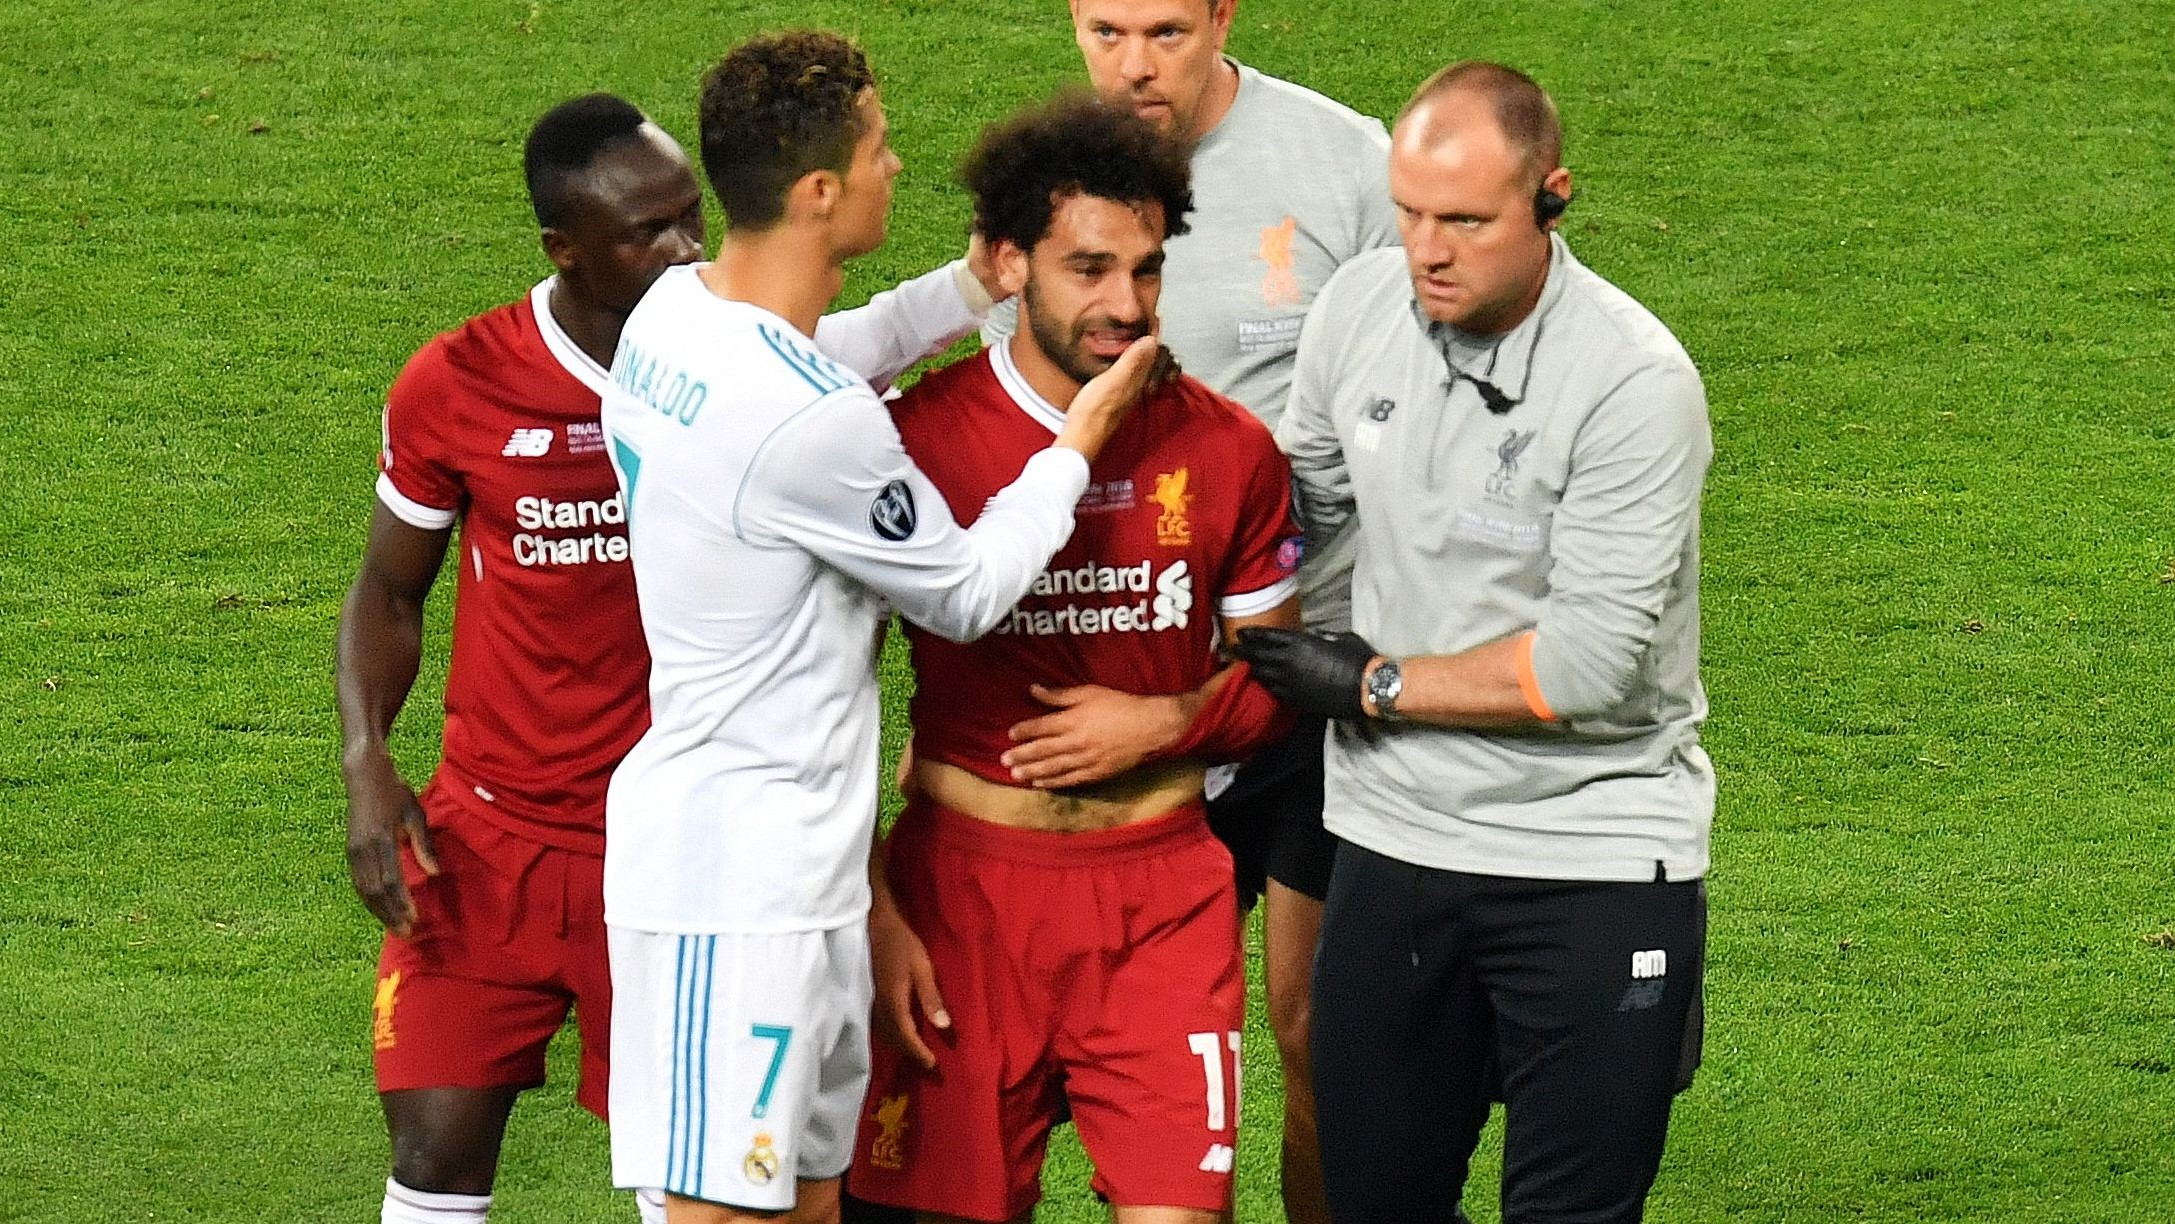 Cristiano Ronaldo Mohamed Salah Real Madrid Liverpool UCL